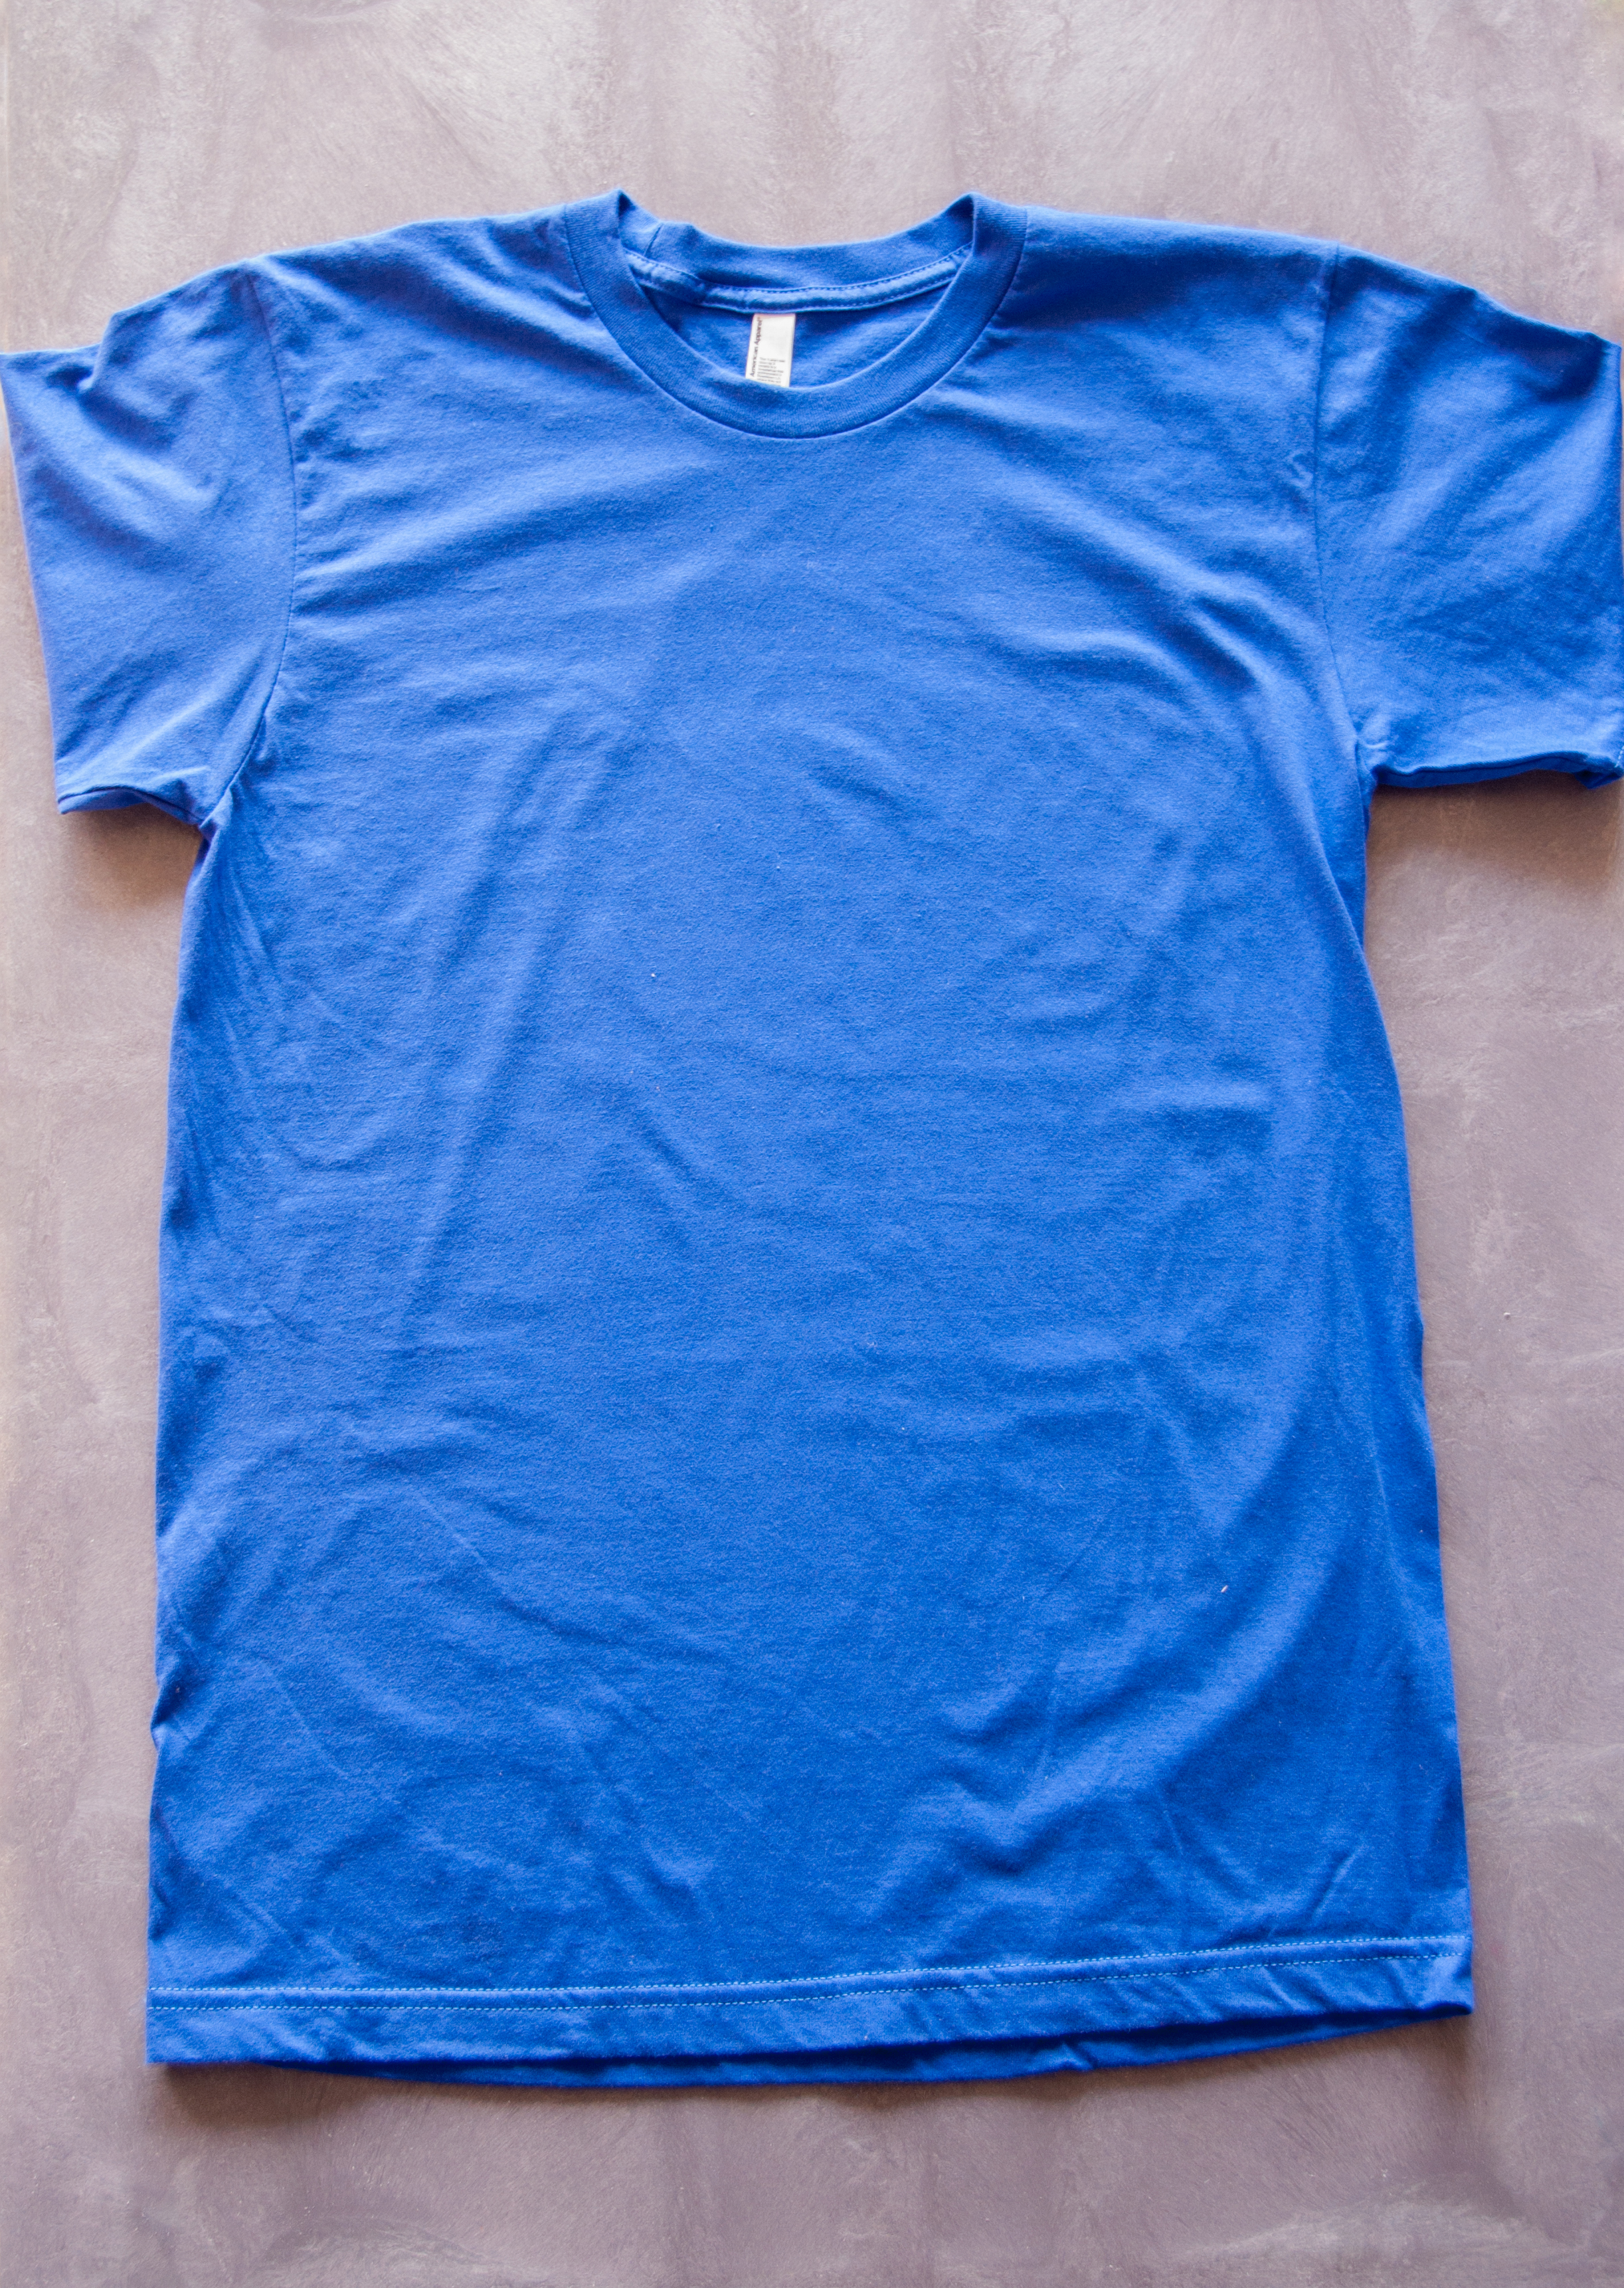 How To Choose The Right T Shirt